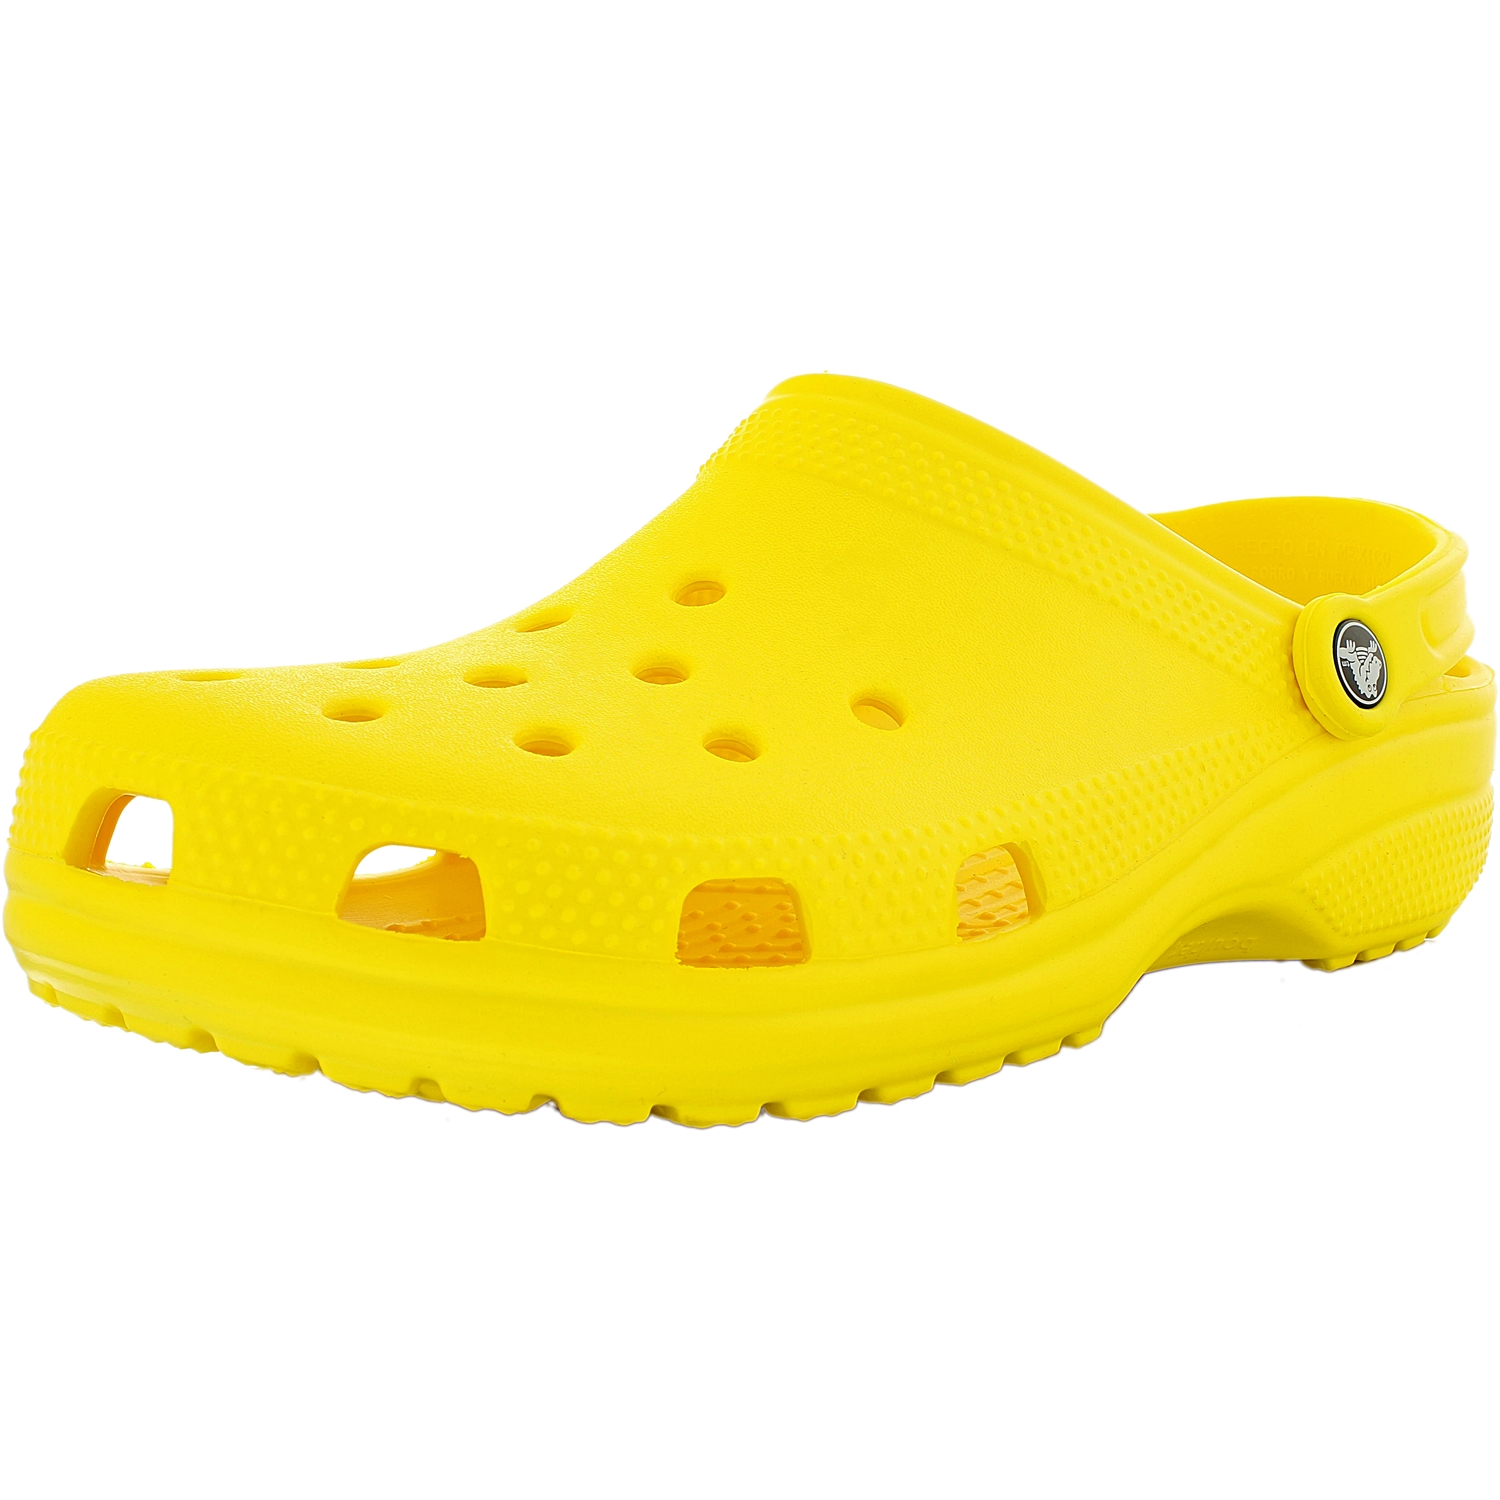 Crocs Classic Round Toe Synthetic Clogs by Crocs